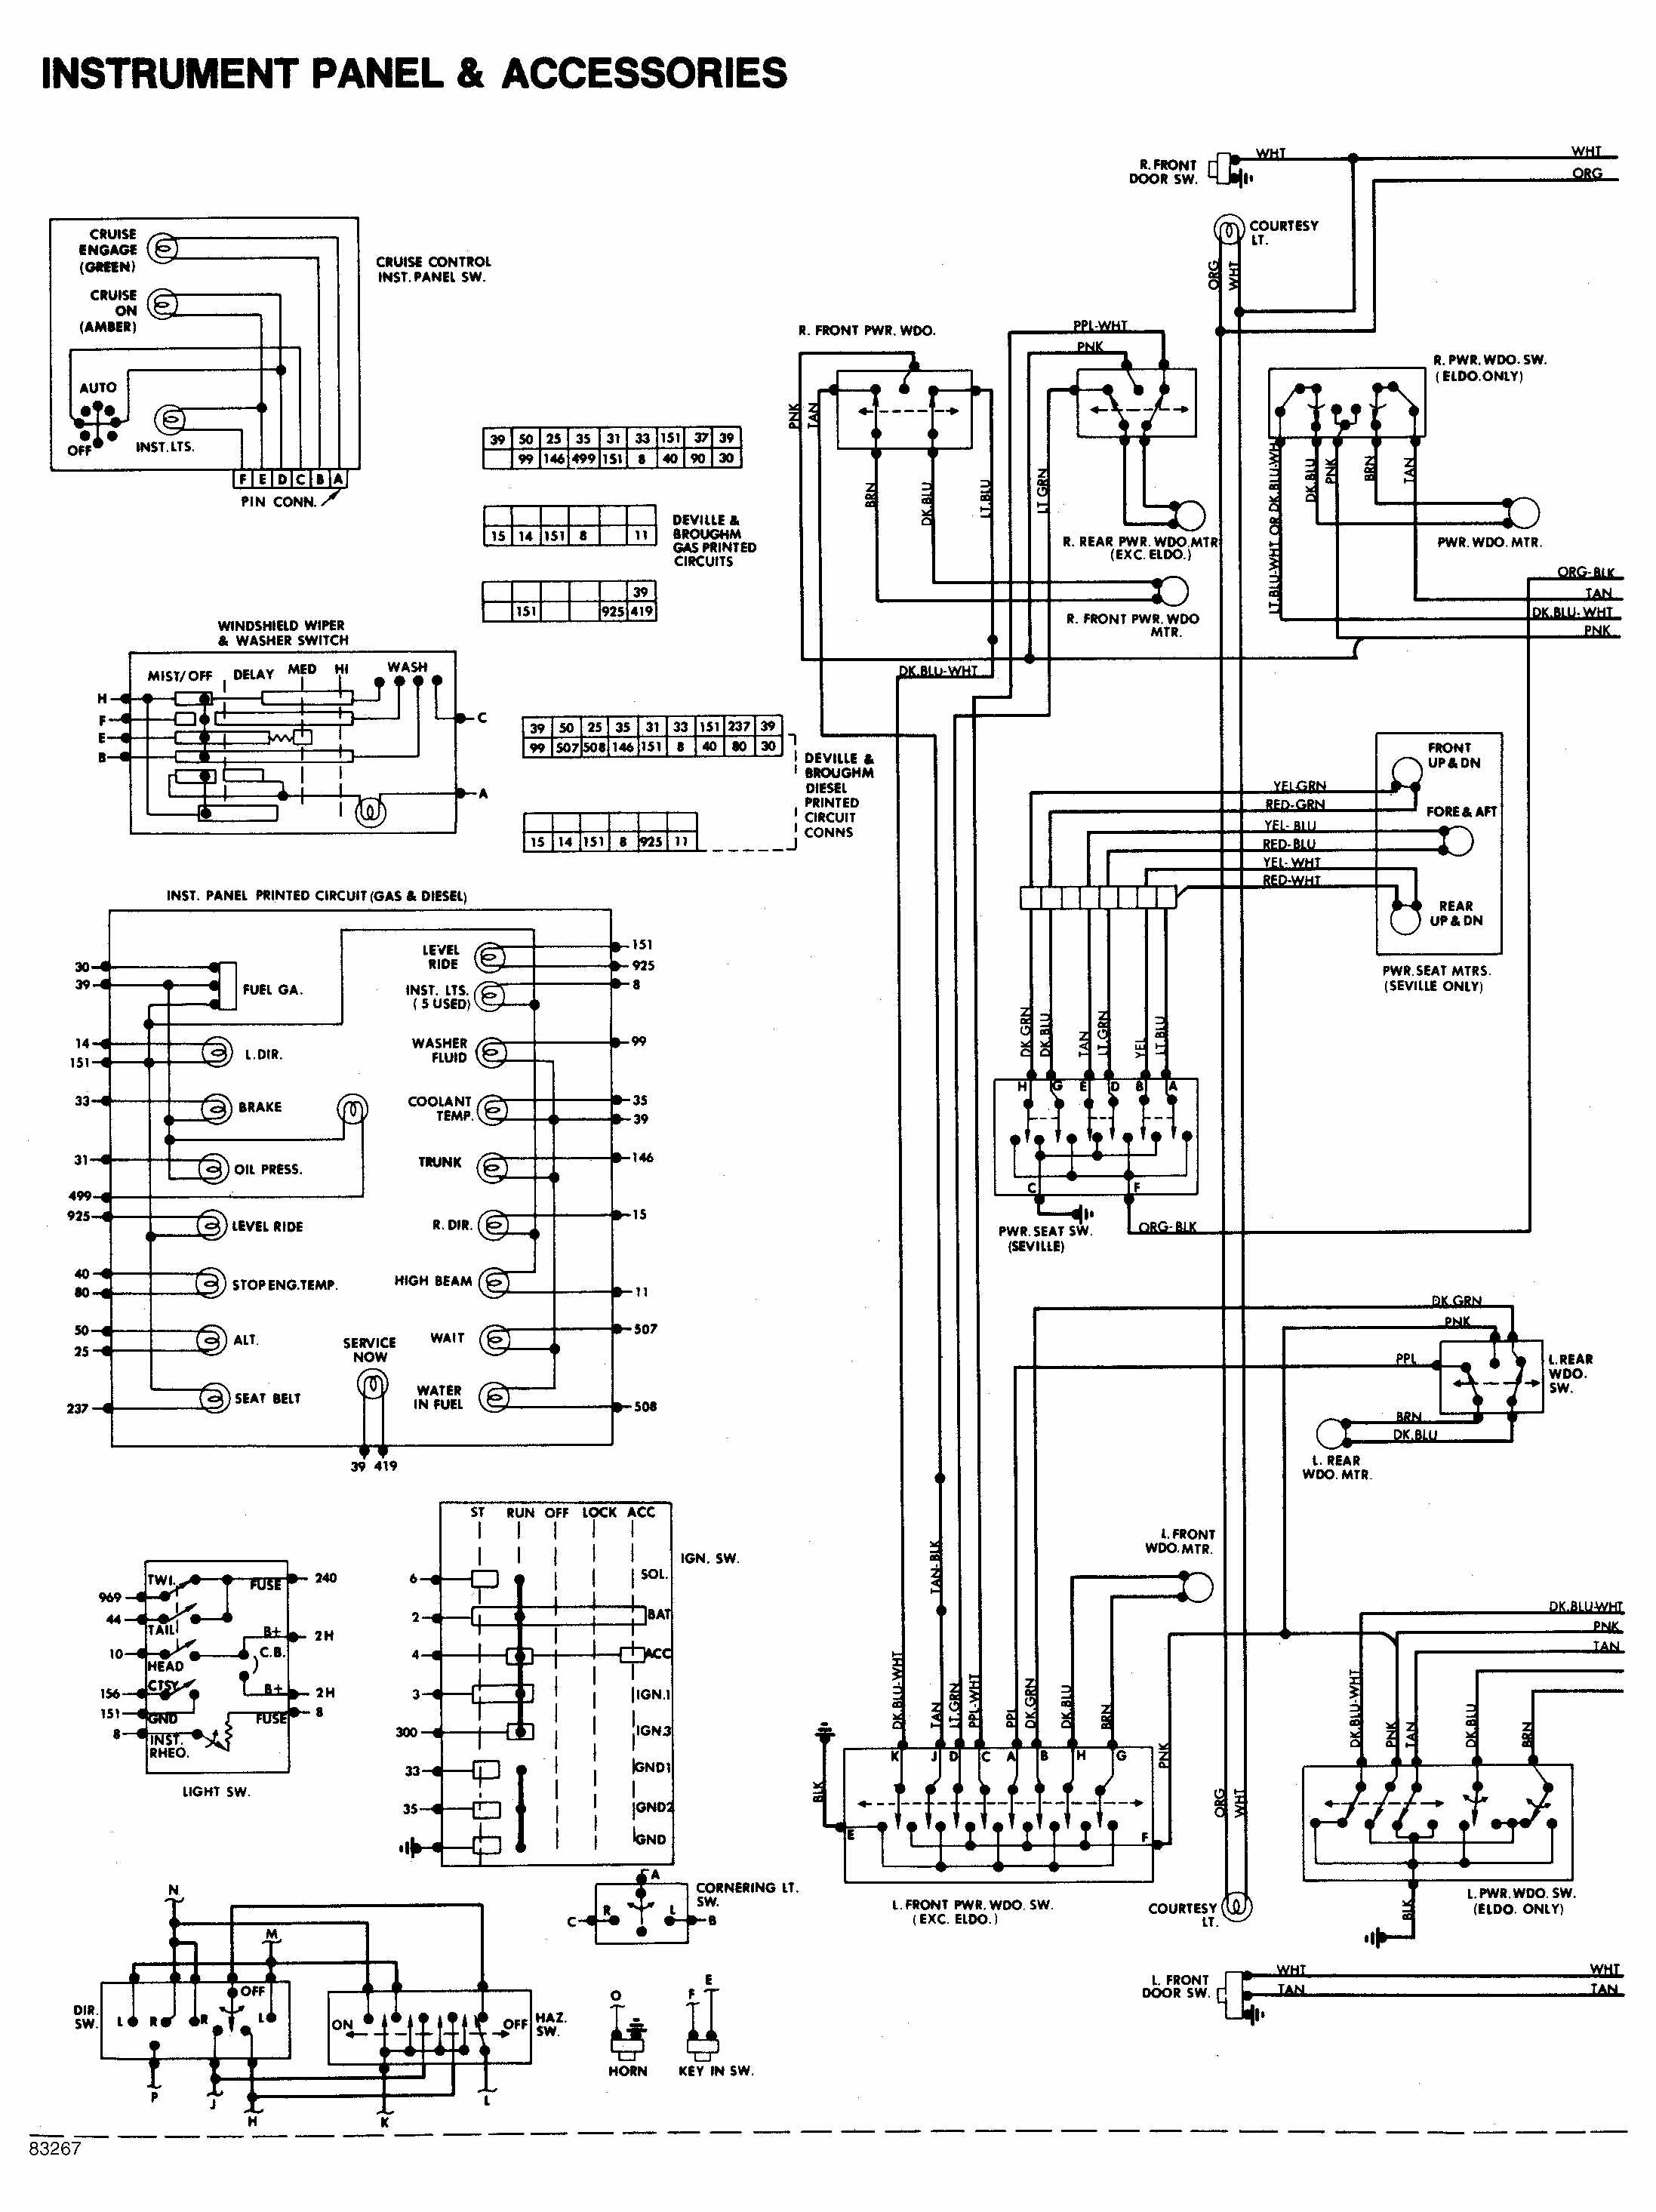 Engine Diagrams 1997 Buick Lesabre 3 8l Wiring Diagram Libraries Skylark Diagrams1997 Simple Schema 2002